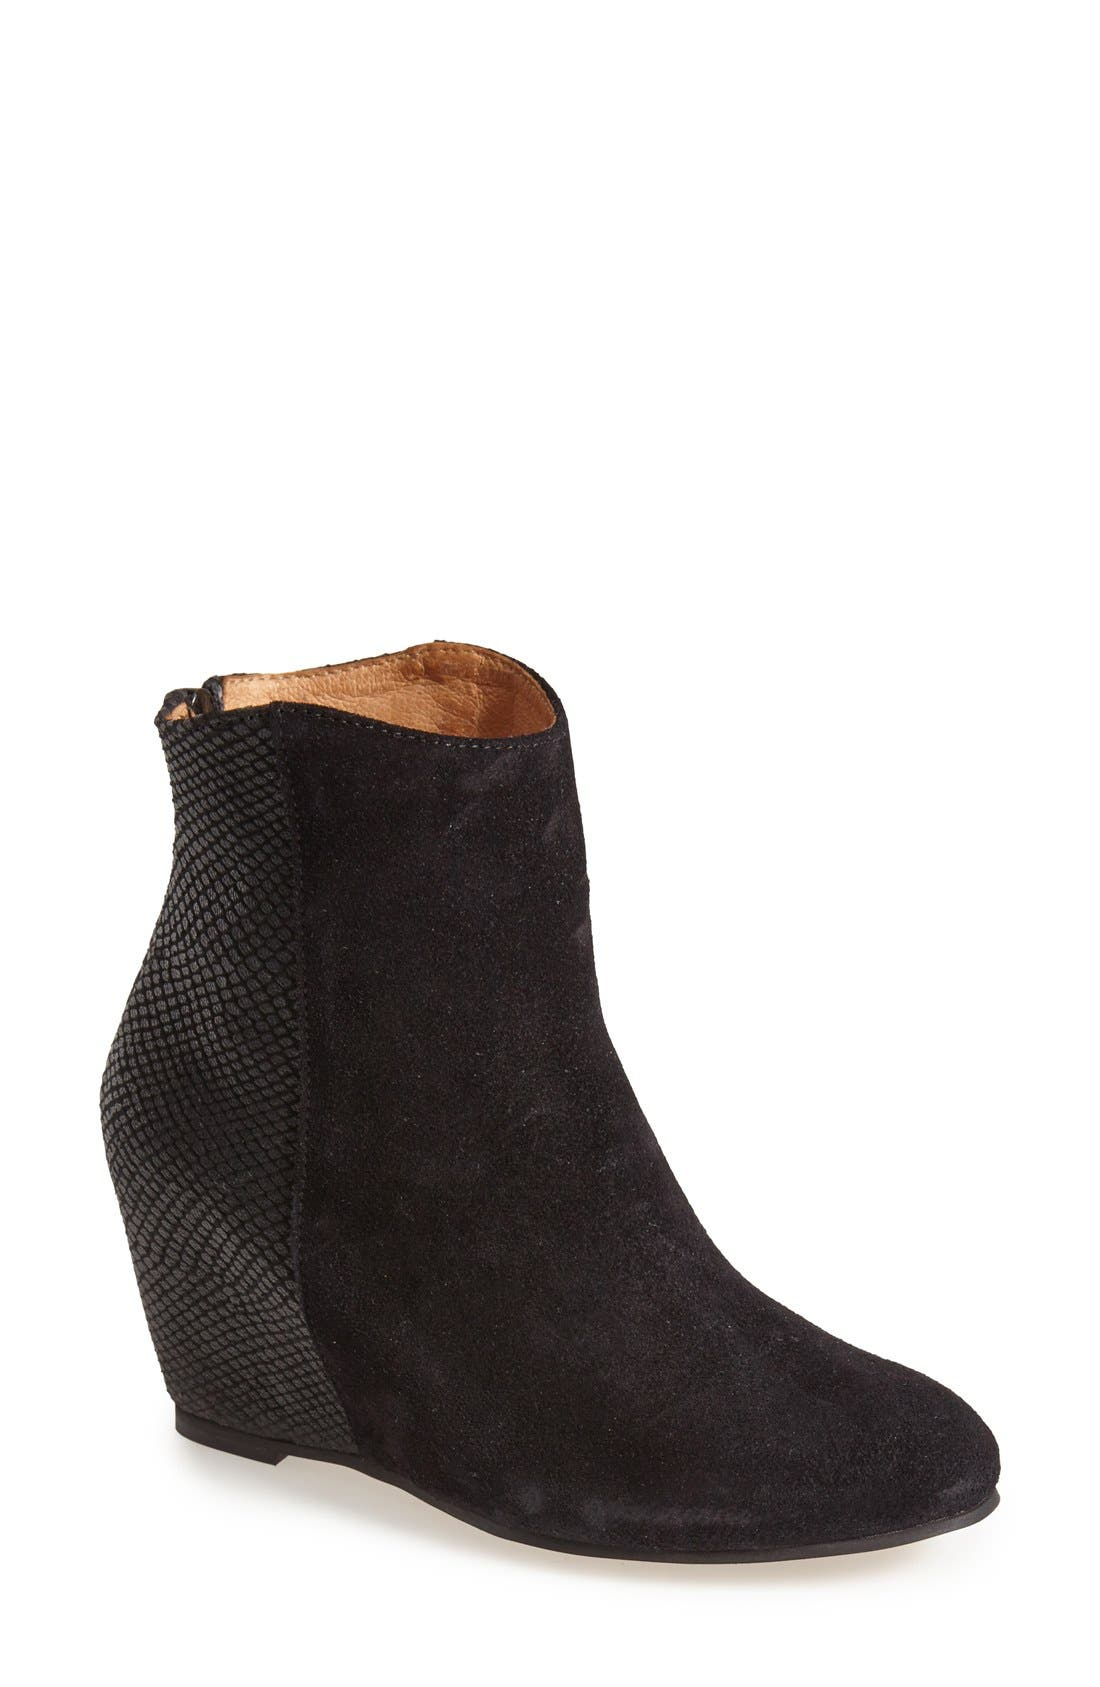 Alternate Image 1 Selected - H by Hudson 'Sefton' Hidden Wedge Bootie (Women)